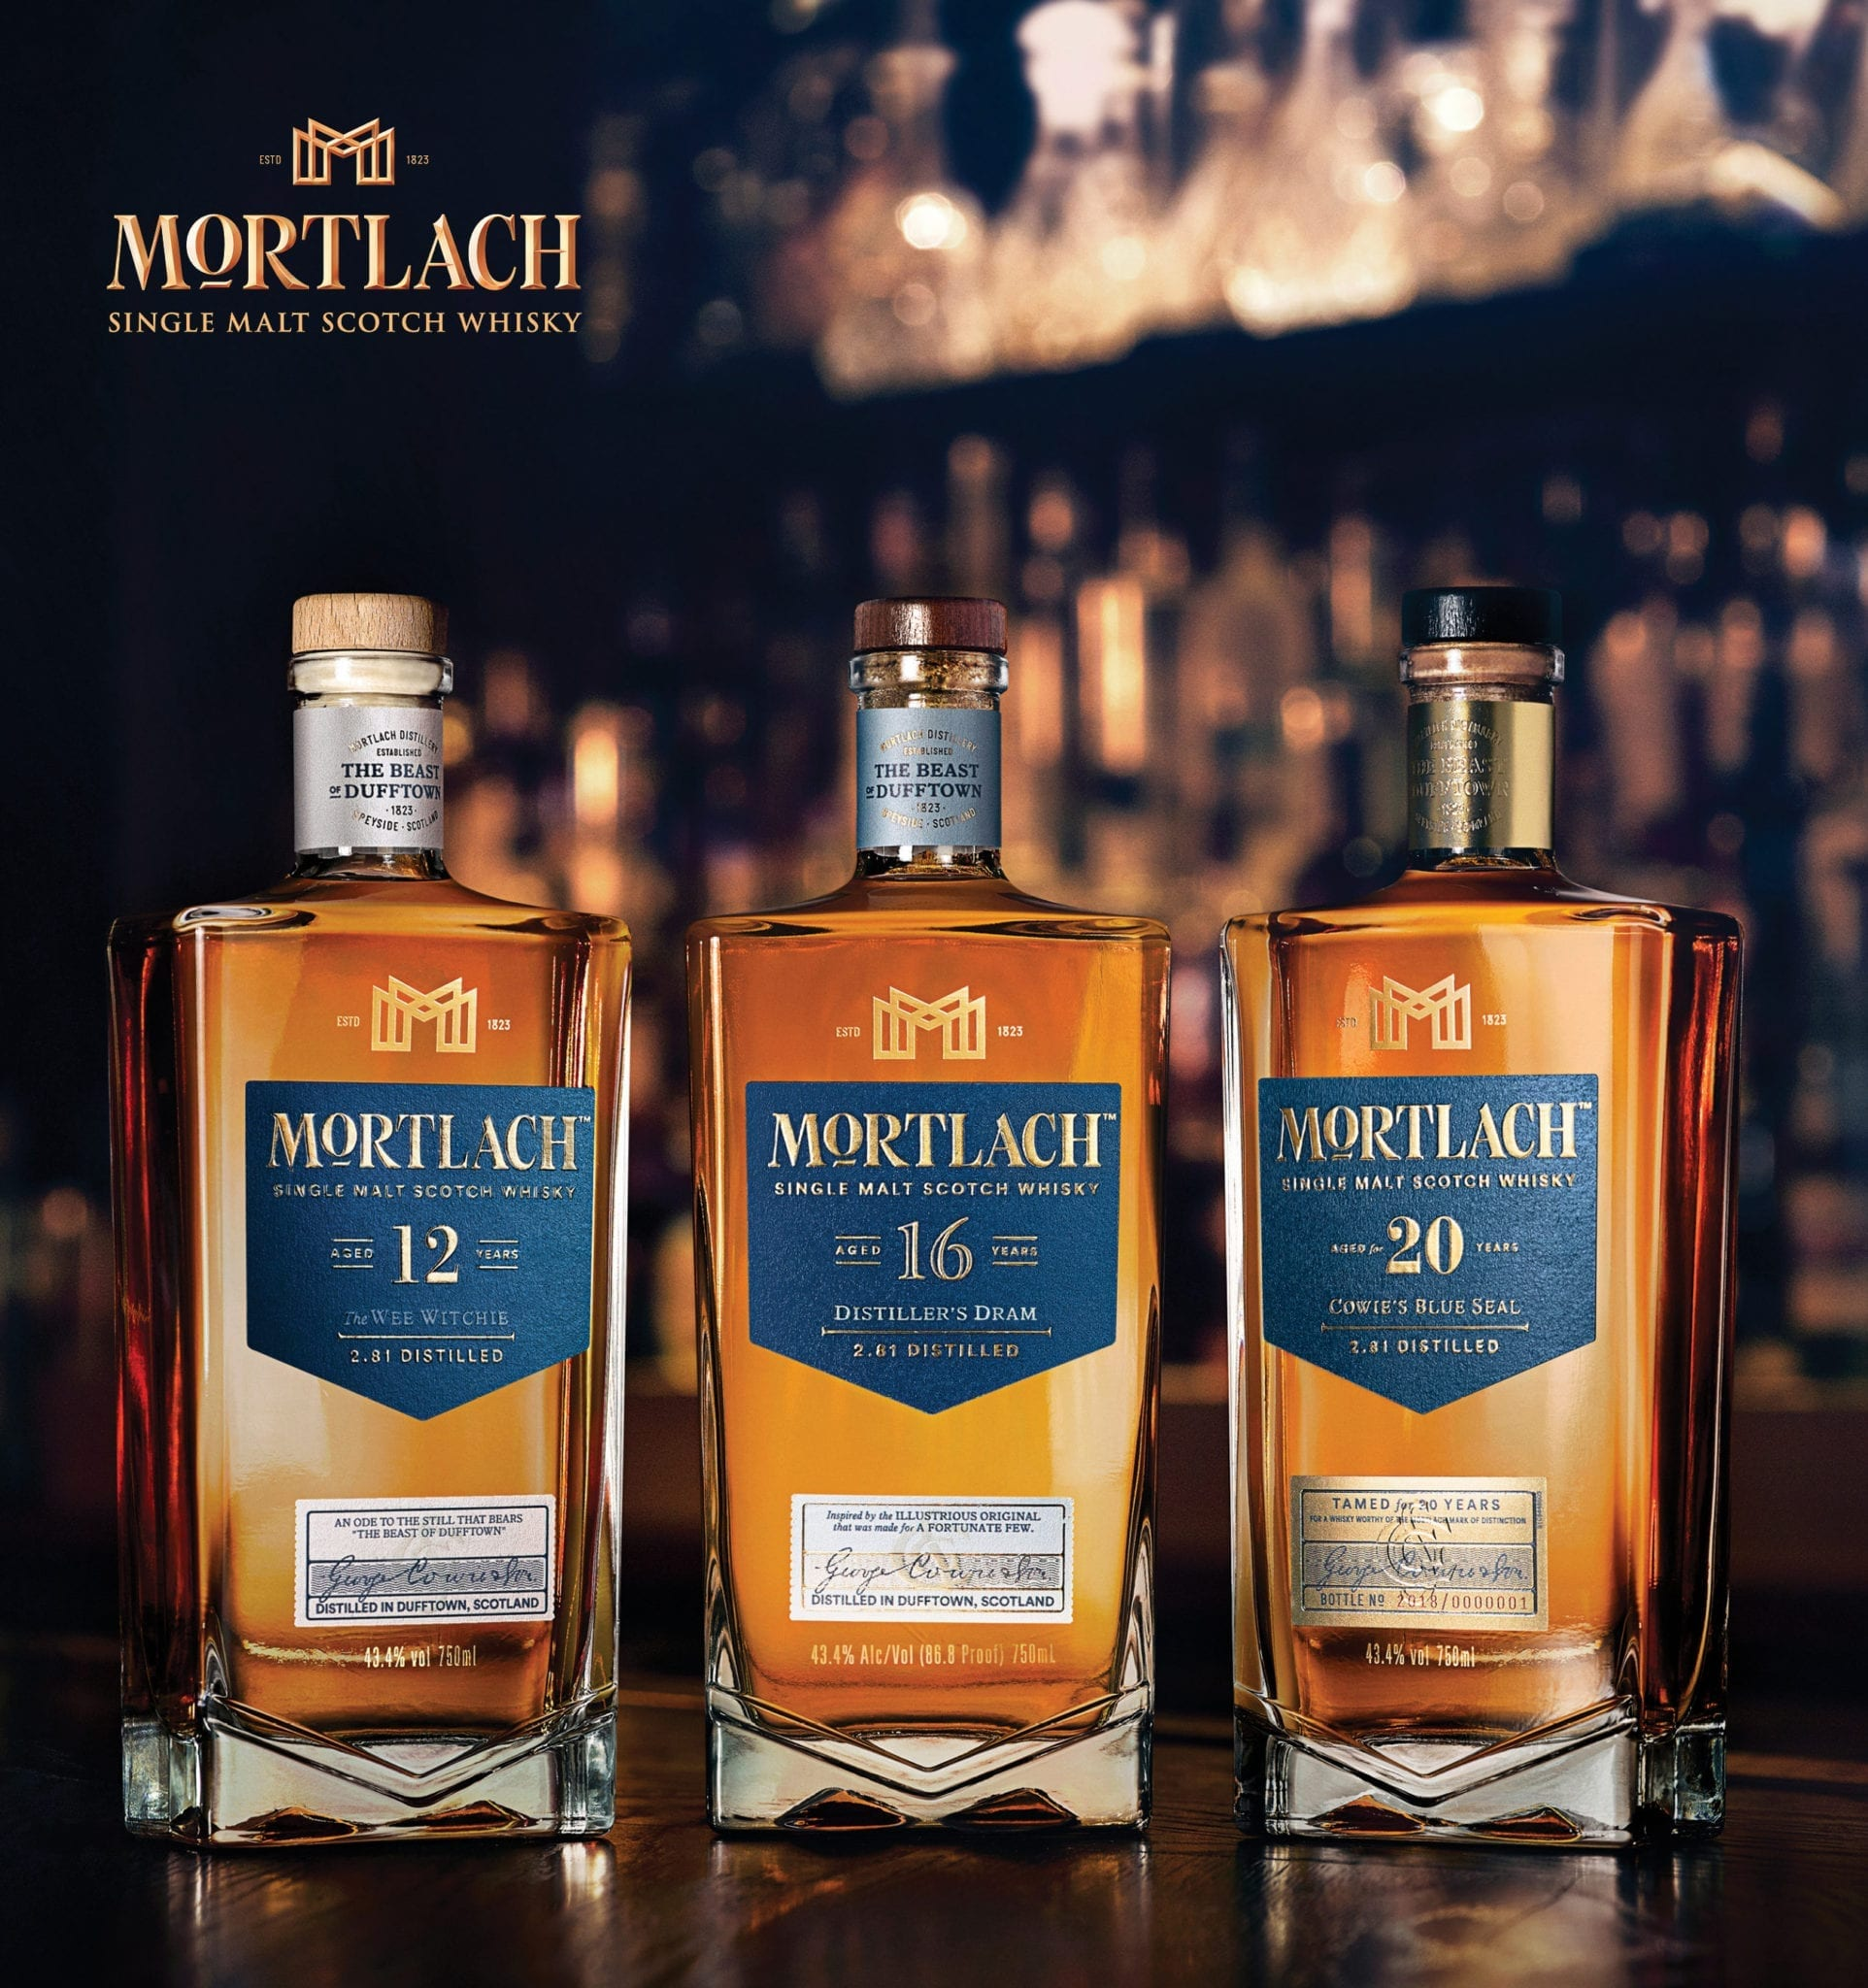 POLO & TWEED AND MORTLACH WHISKY MAKE IT A FATHER'S DAY TO REMEMBER